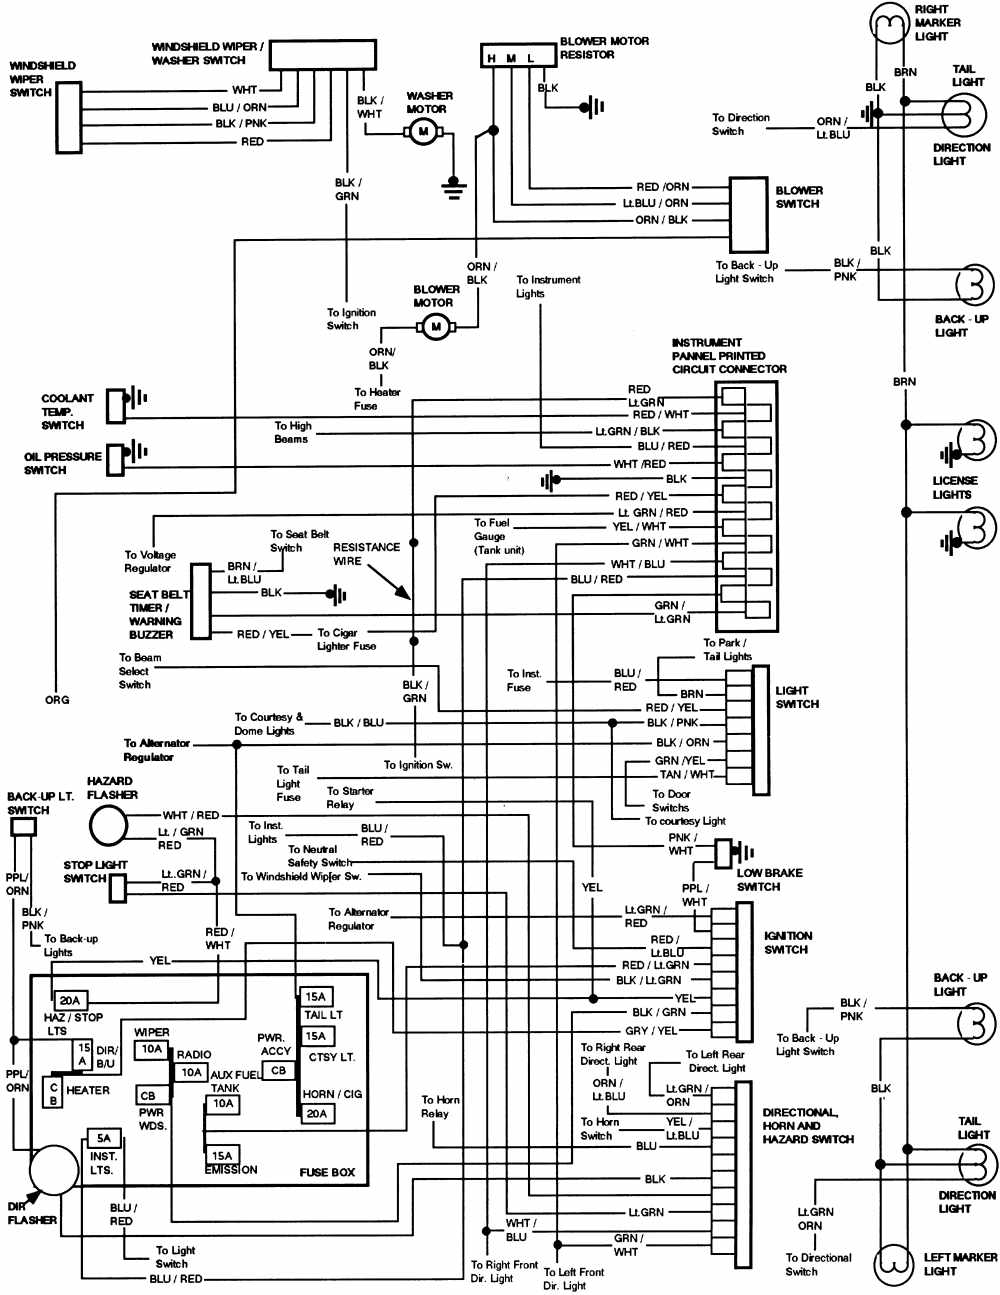 altenator for 2003 e150 wiring diagram